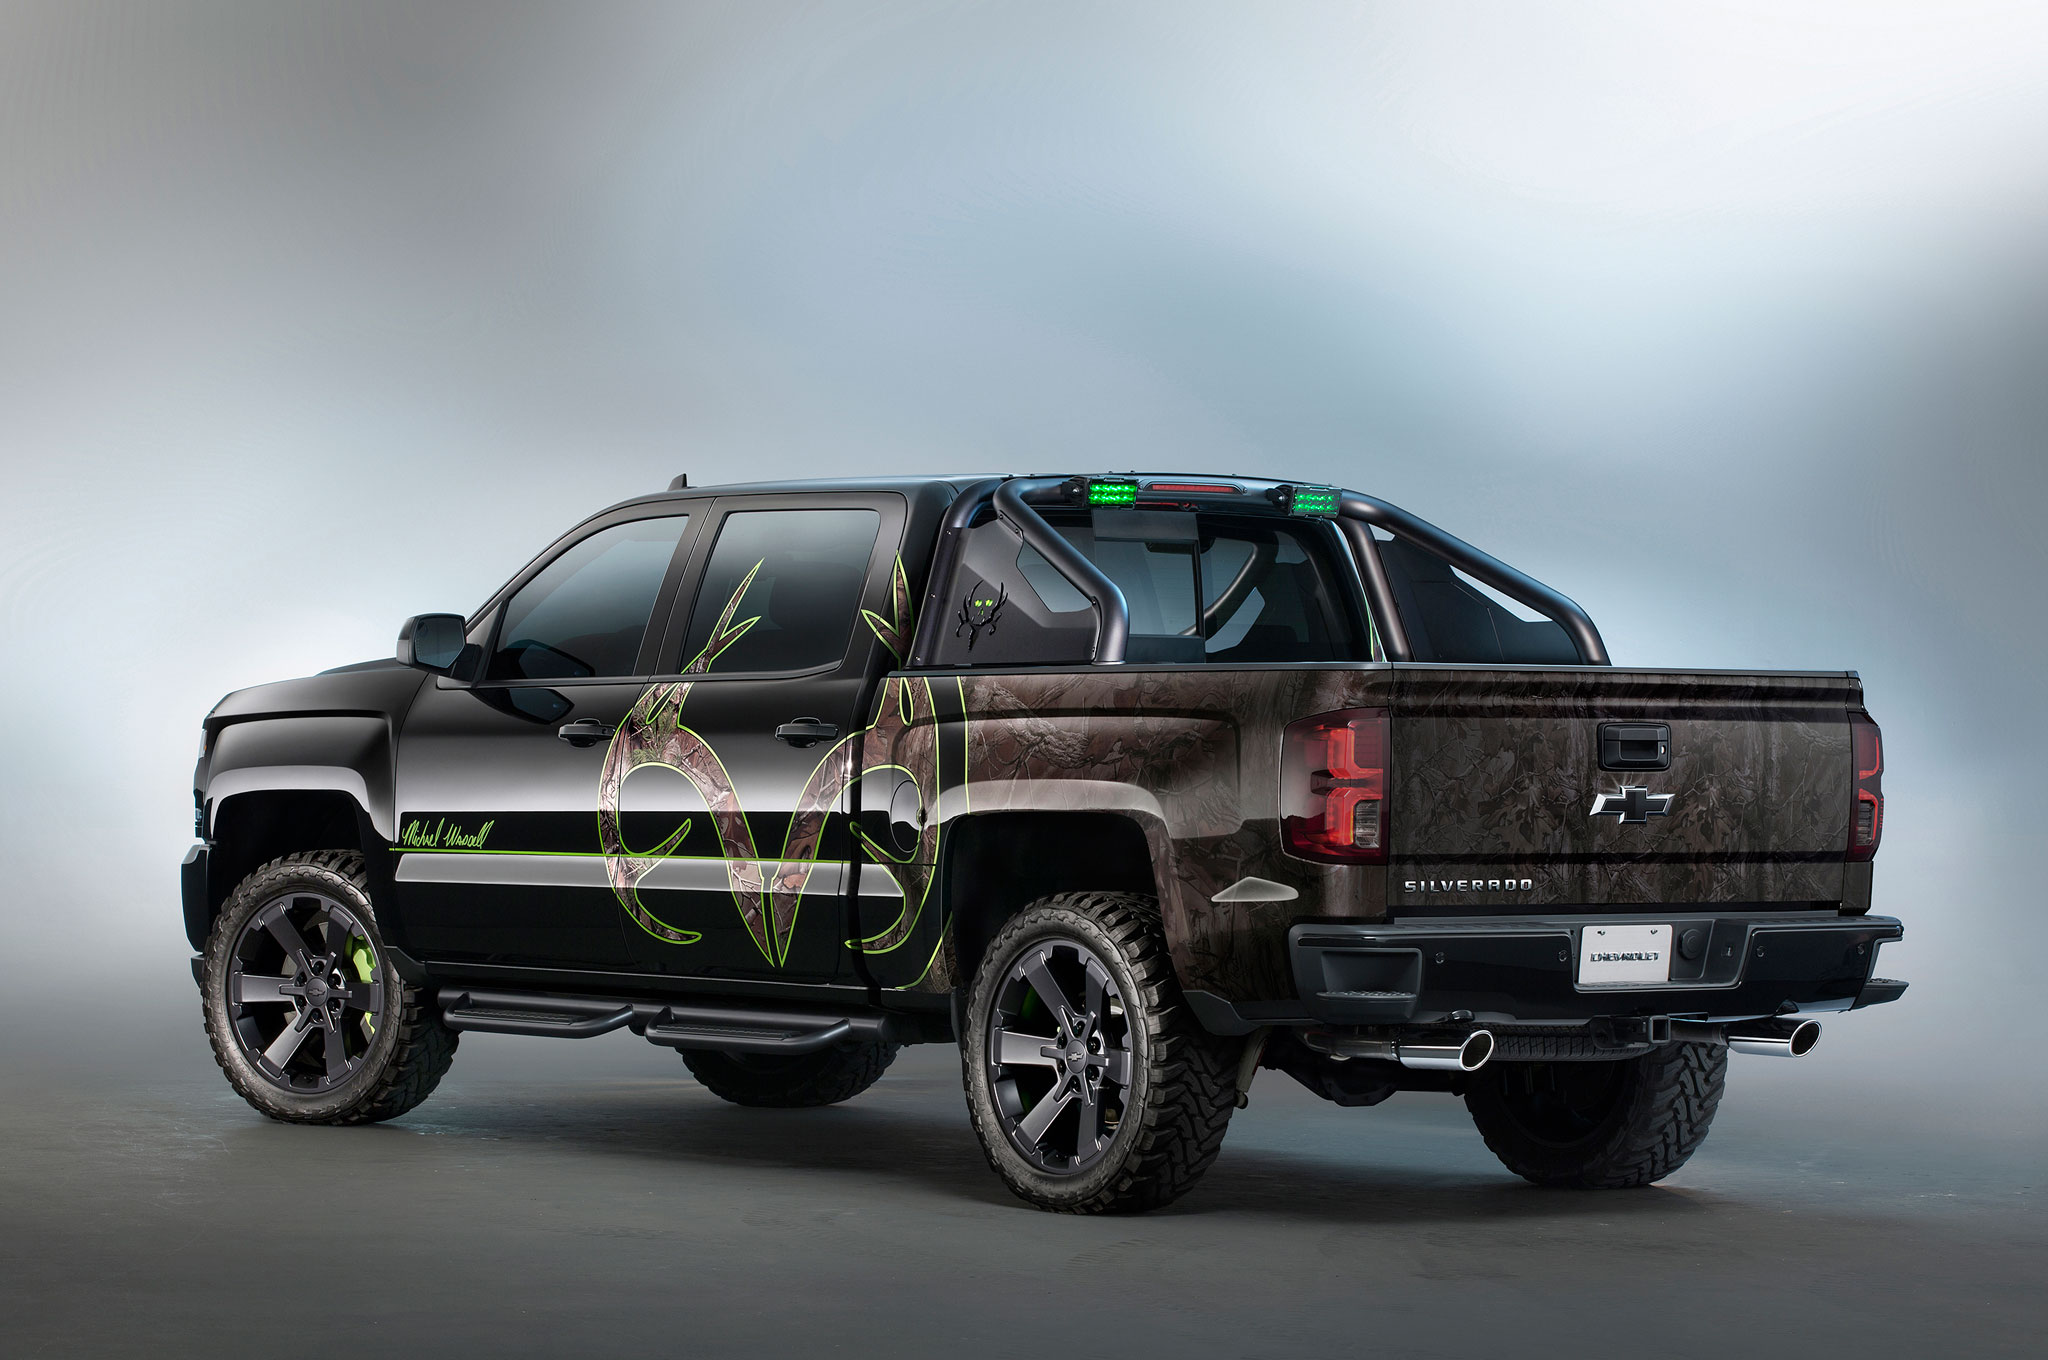 The 2016 Chevrolet Silverado Realtree Edition Goes On This Spring Conner Golden